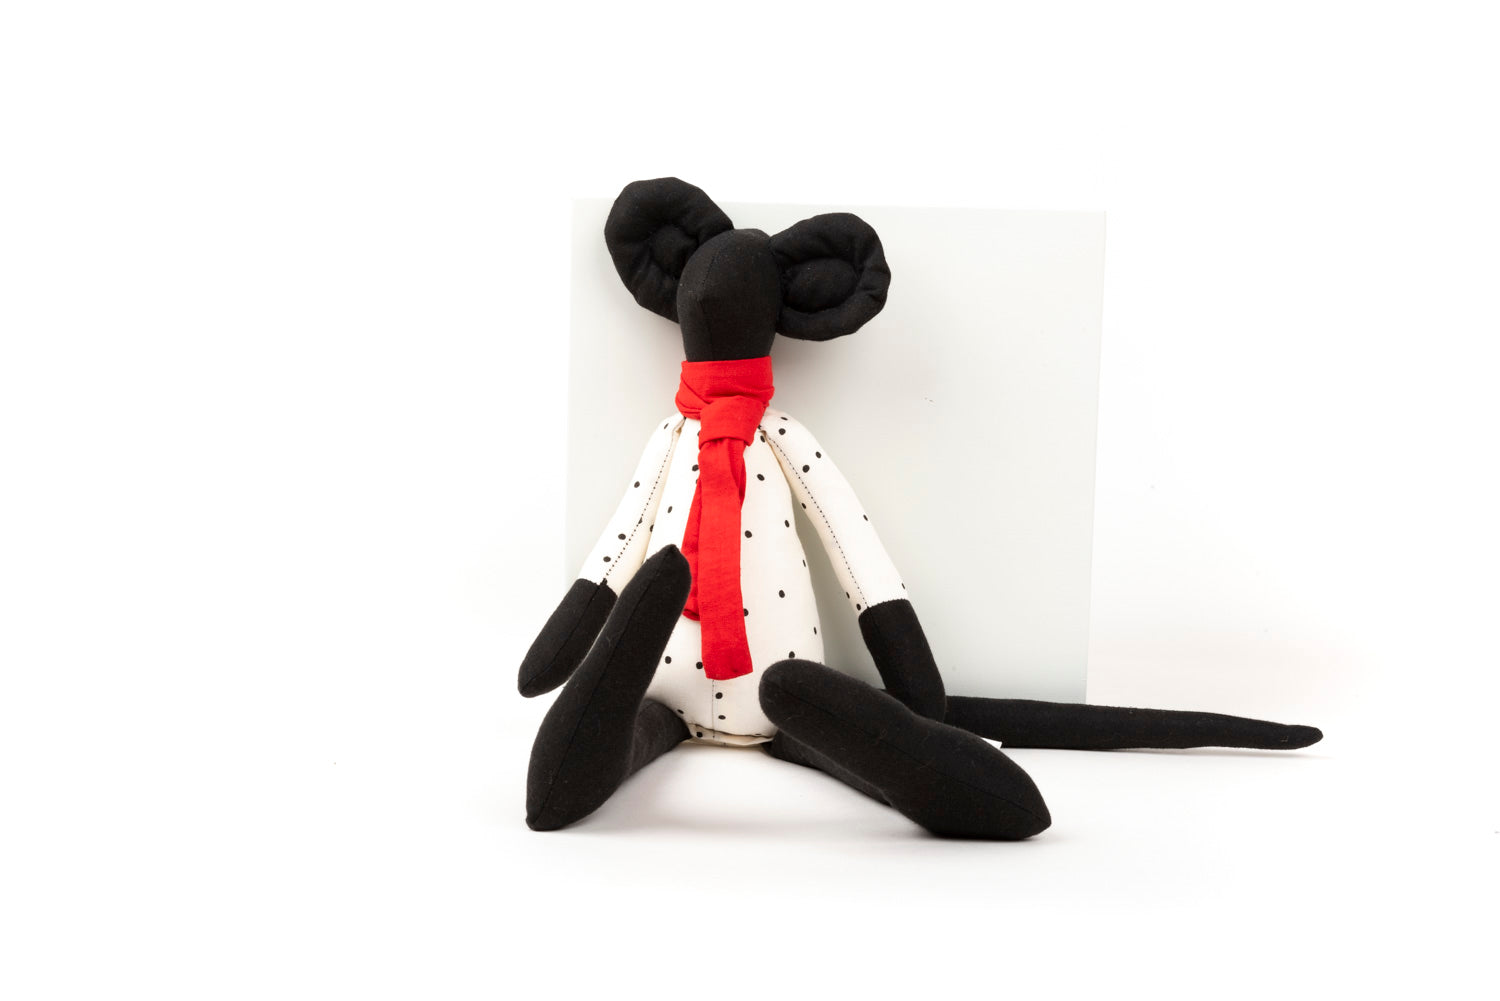 Black doll Mouse doll Gender free doll Stuffed animal Handmade doll Minimalist toy Fabric doll Eco Mice Fine toy Plushie doll First doll